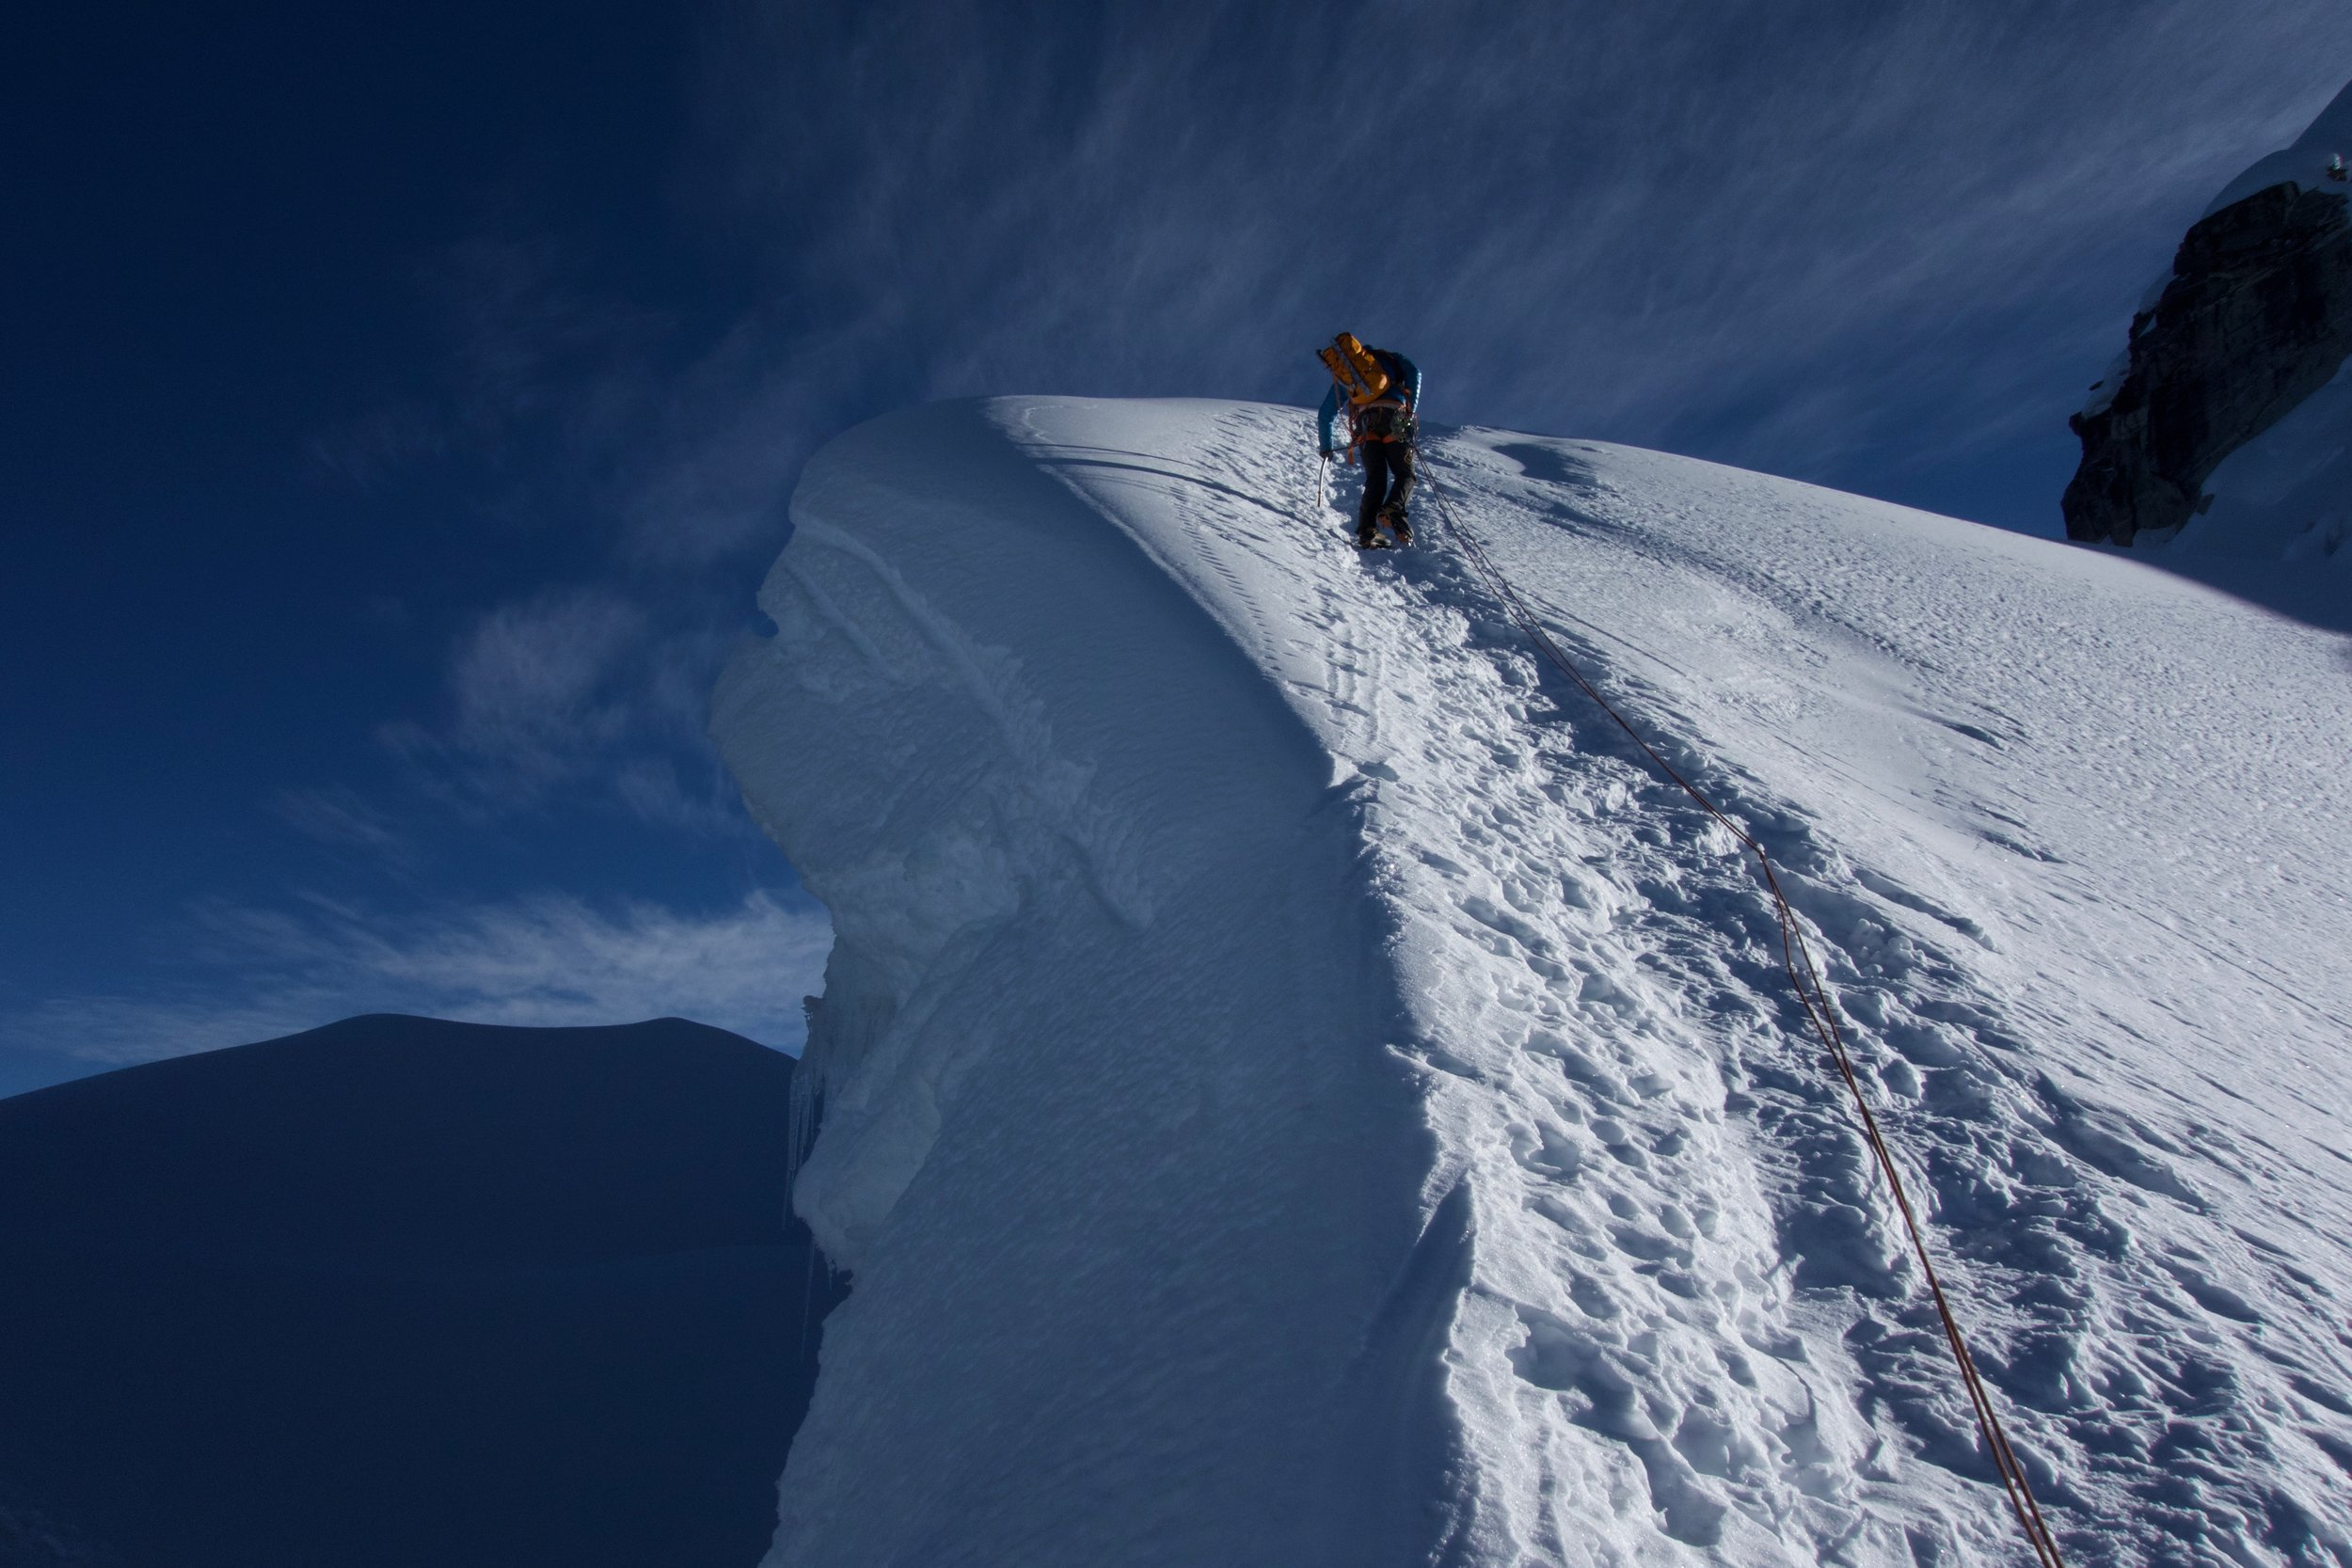 On the way up after crossing a big crevasse